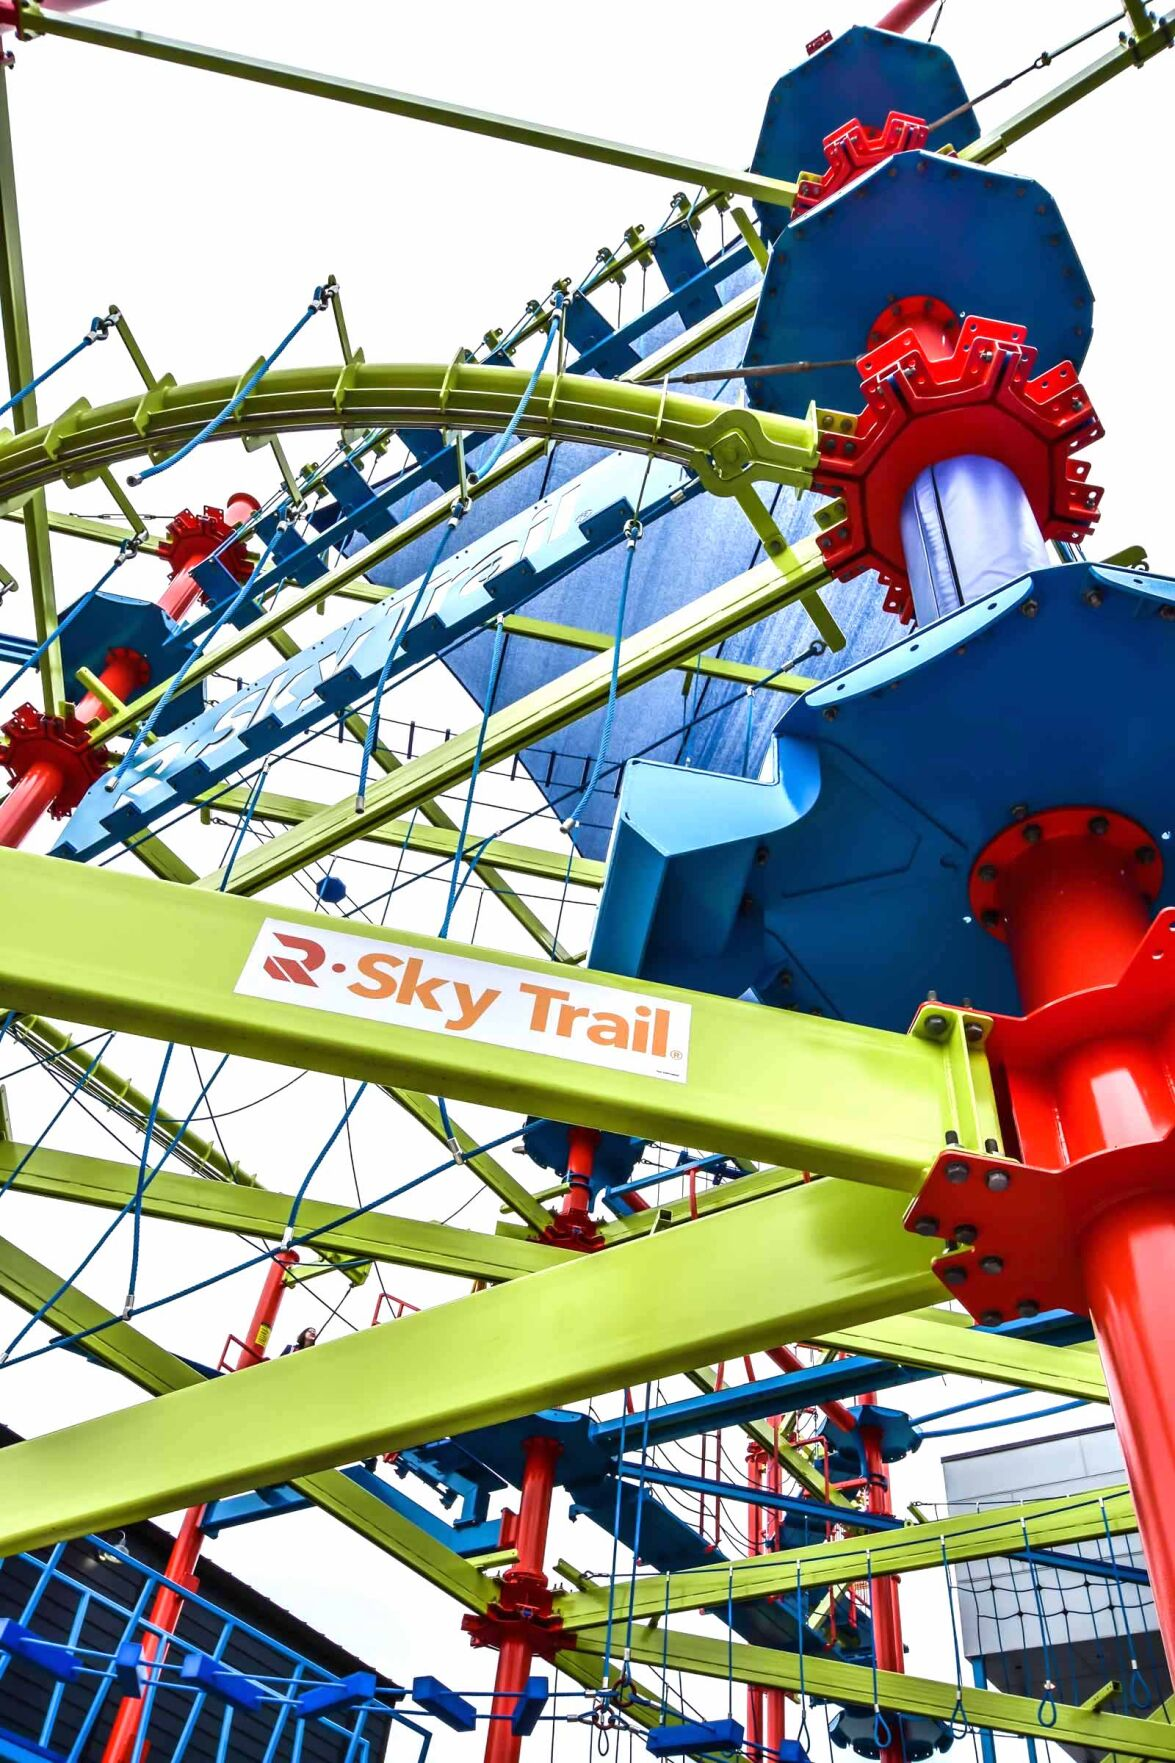 The Malted Monkey's Sky Trail